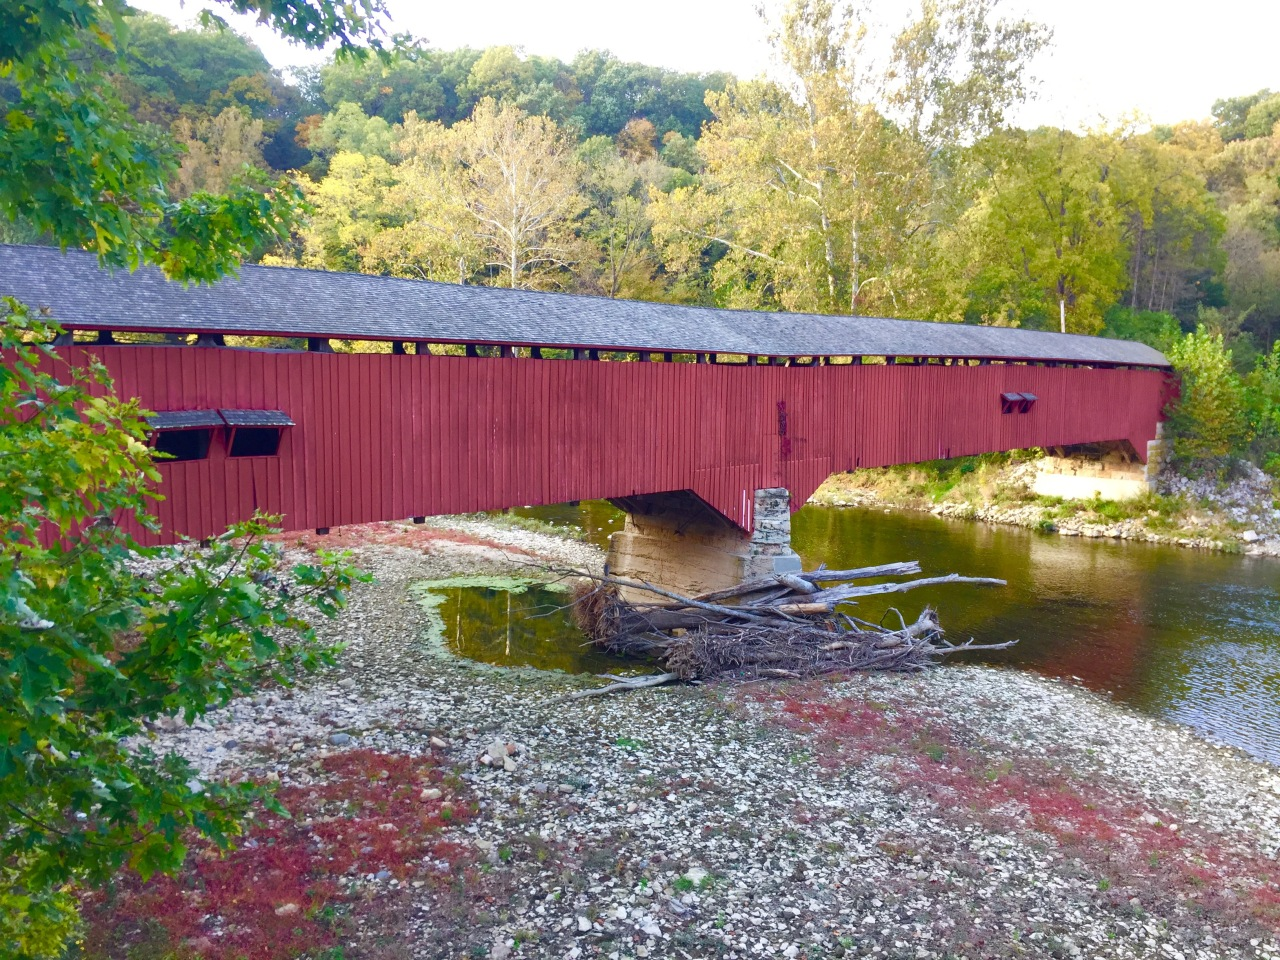 The Covered Bridges of Parke County – Indiana